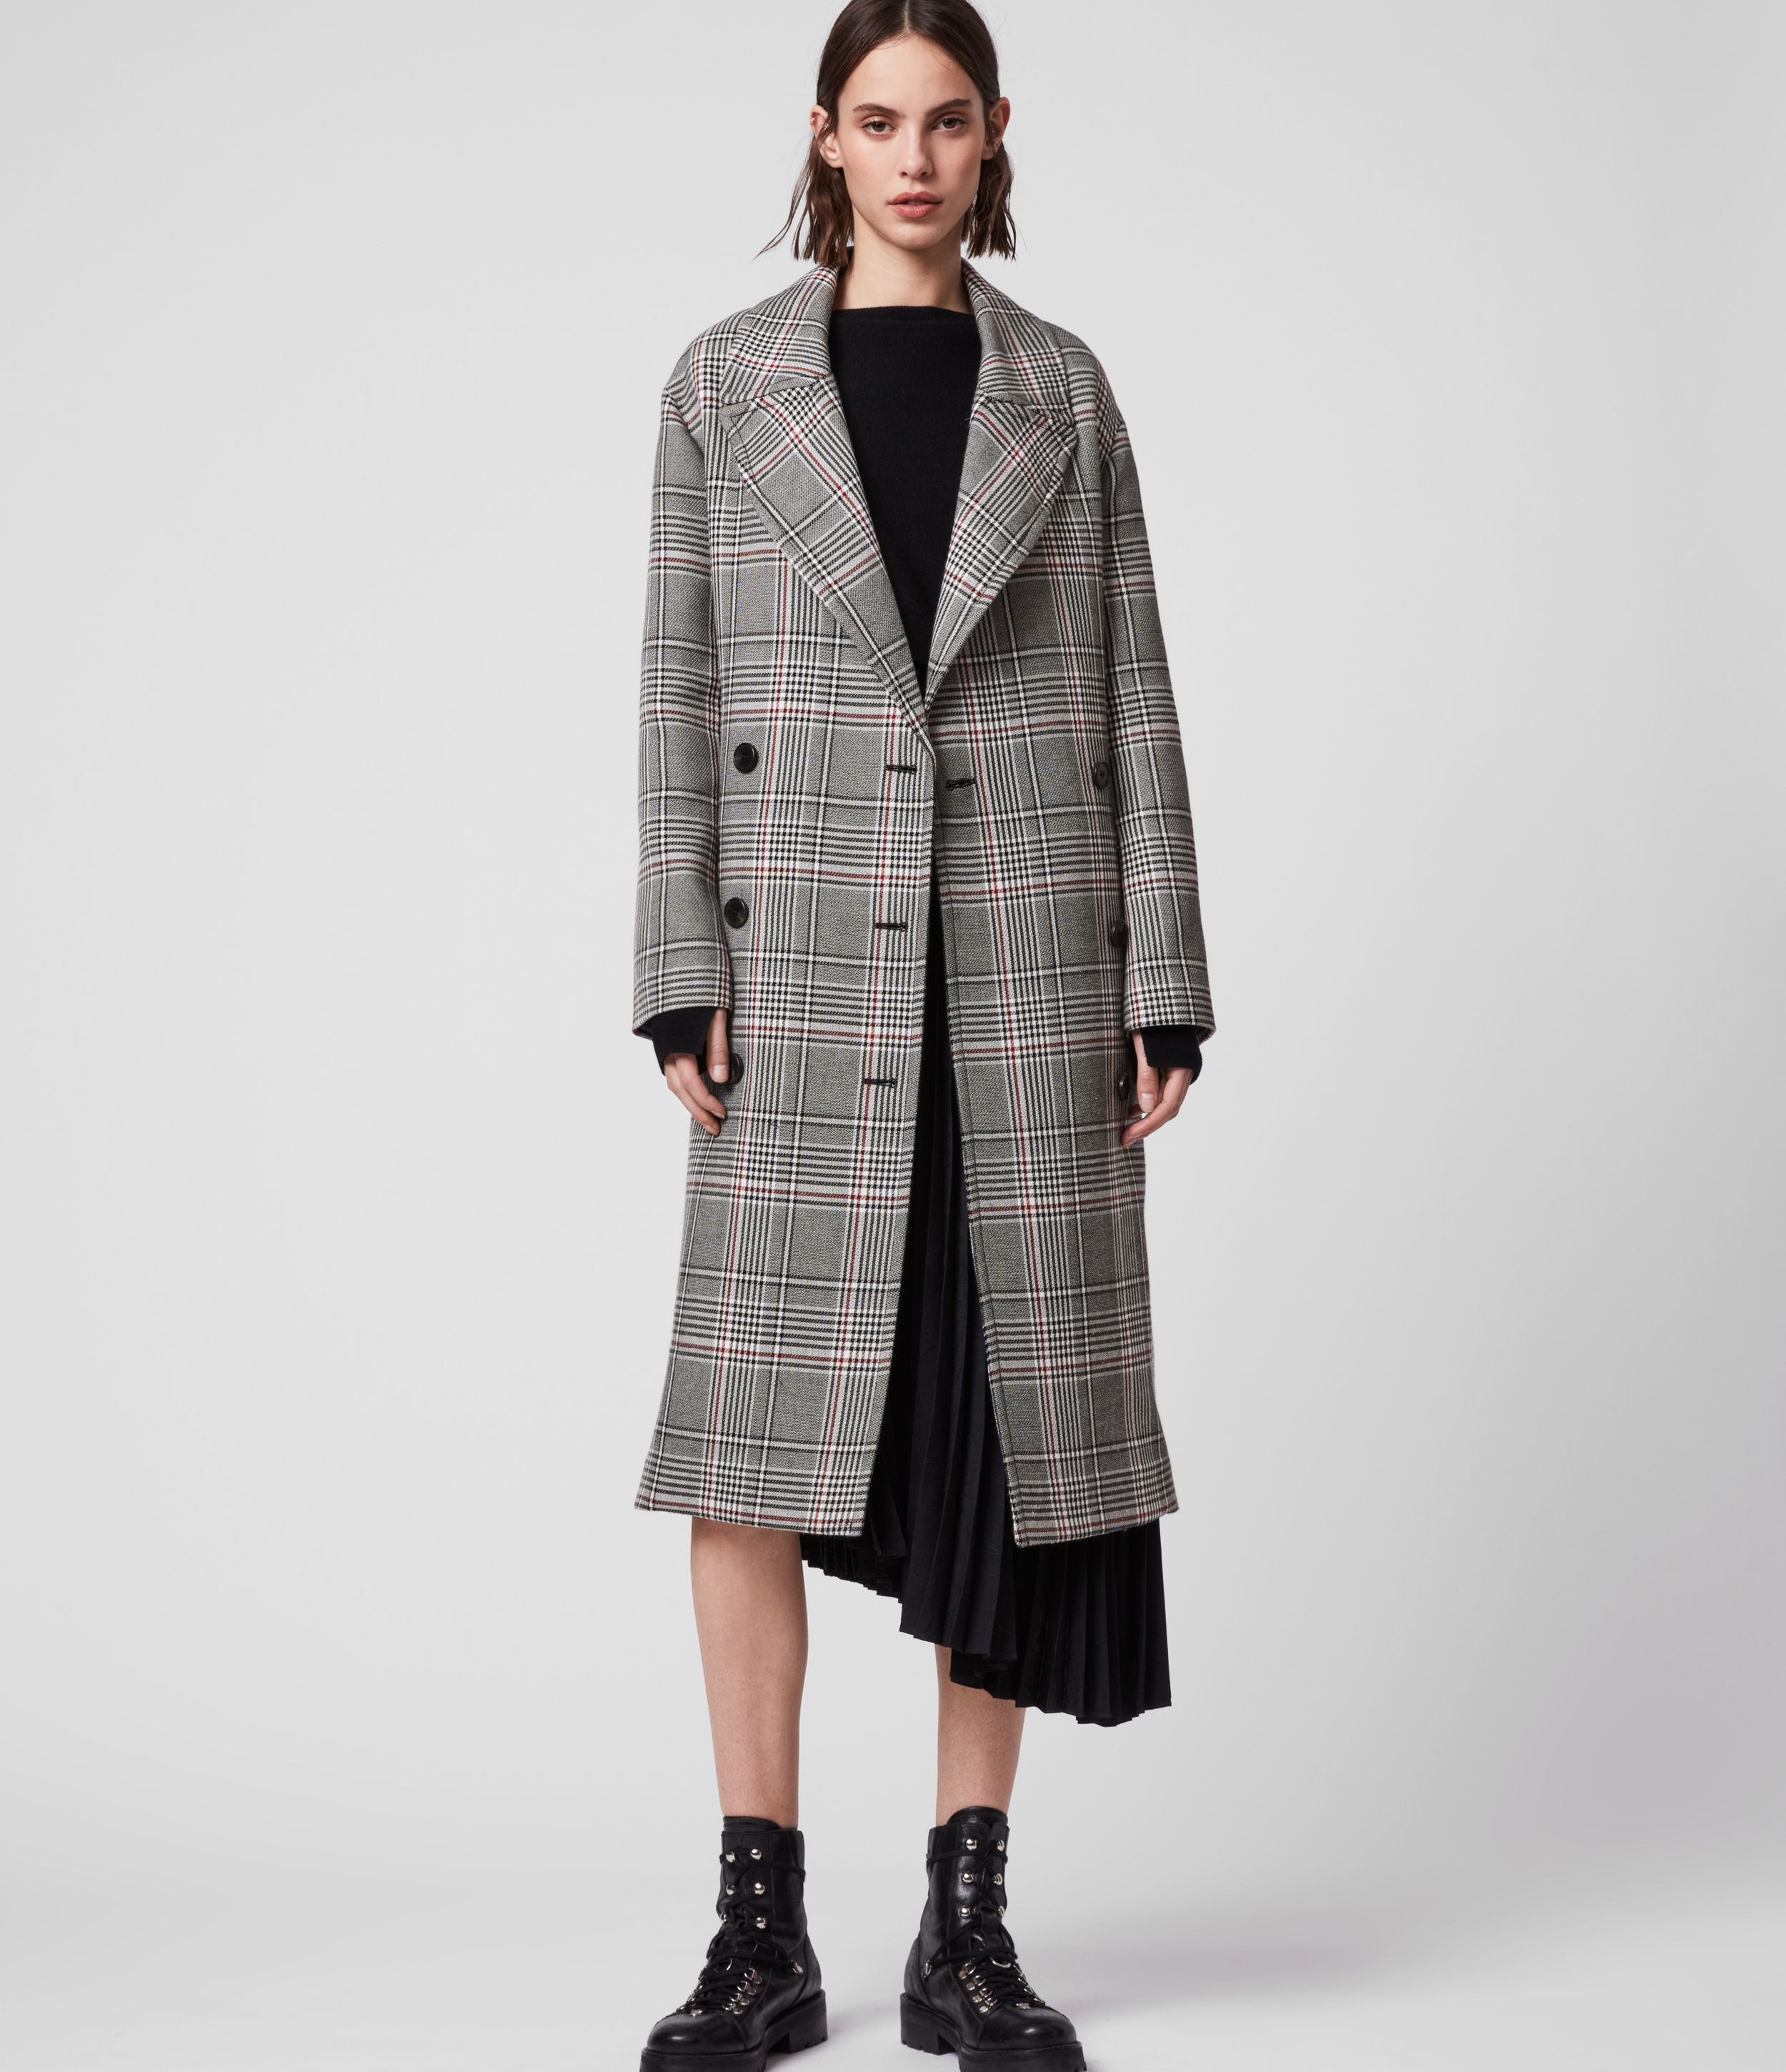 AllSaints Women's Cotton Check Relaxed Fit Tyla Trench Coat, Black and White, Size: M